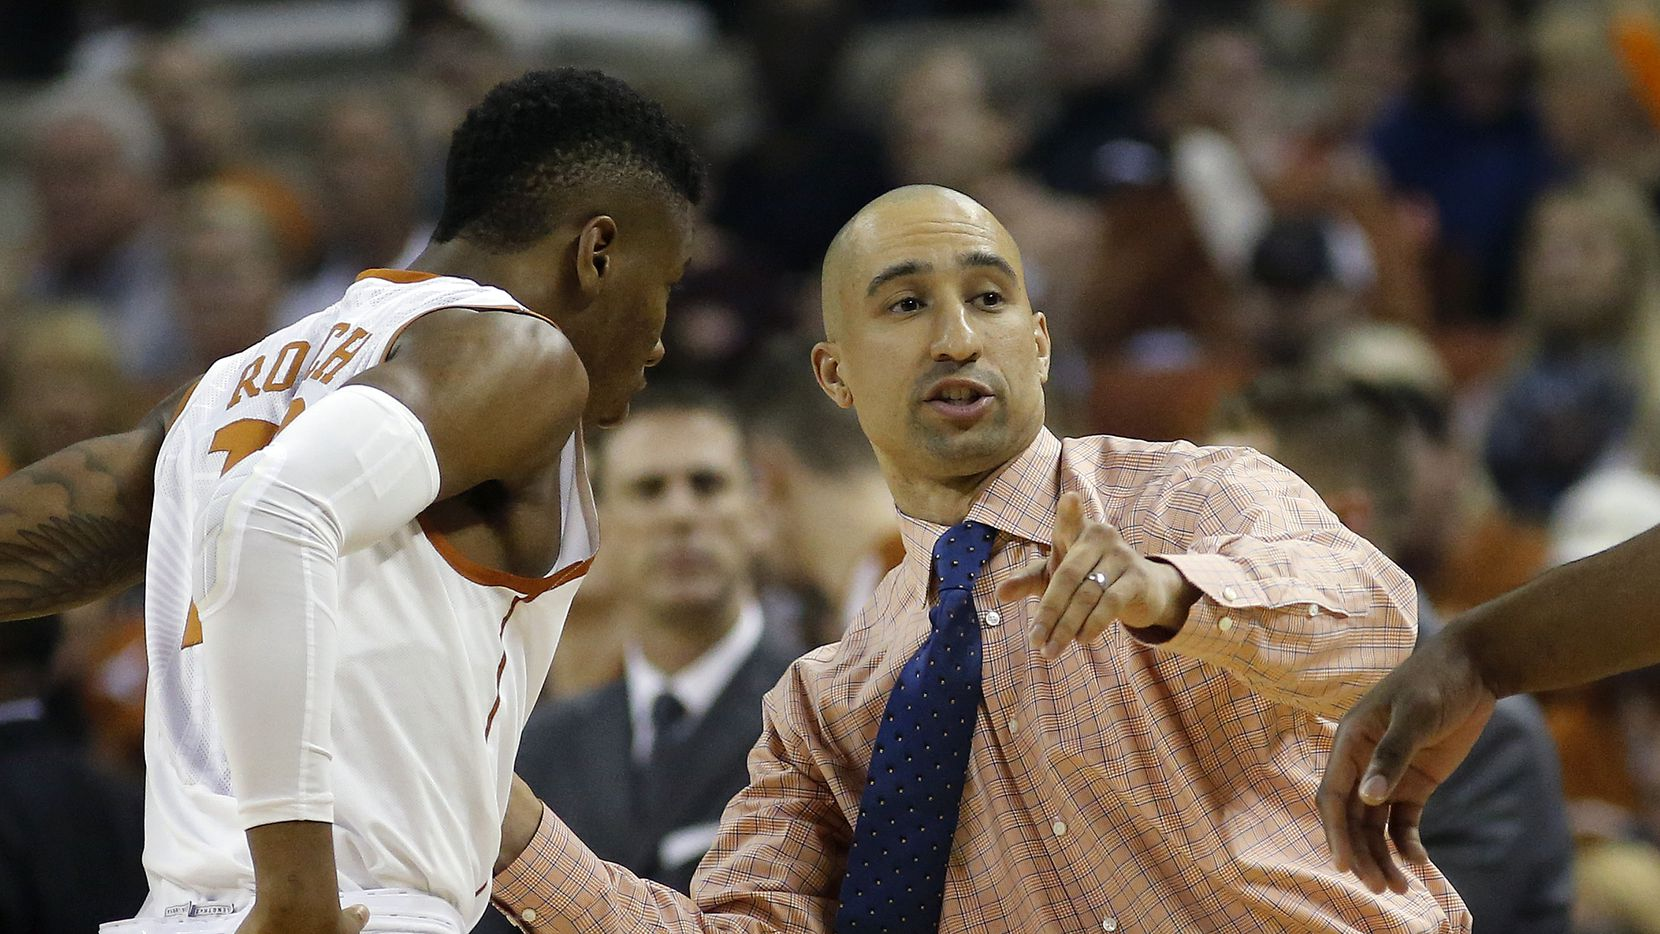 AUSTIN, TX - DECEMBER 12: Head coach Shaka Smart of the Texas Longhorns talks with Kerwin Roach Jr. #12 during the game with the North Carolina Tar Heels at the Frank Erwin Center on December 12, 2015 in Austin, Texas. (Photo by Chris Covatta/Getty Images)